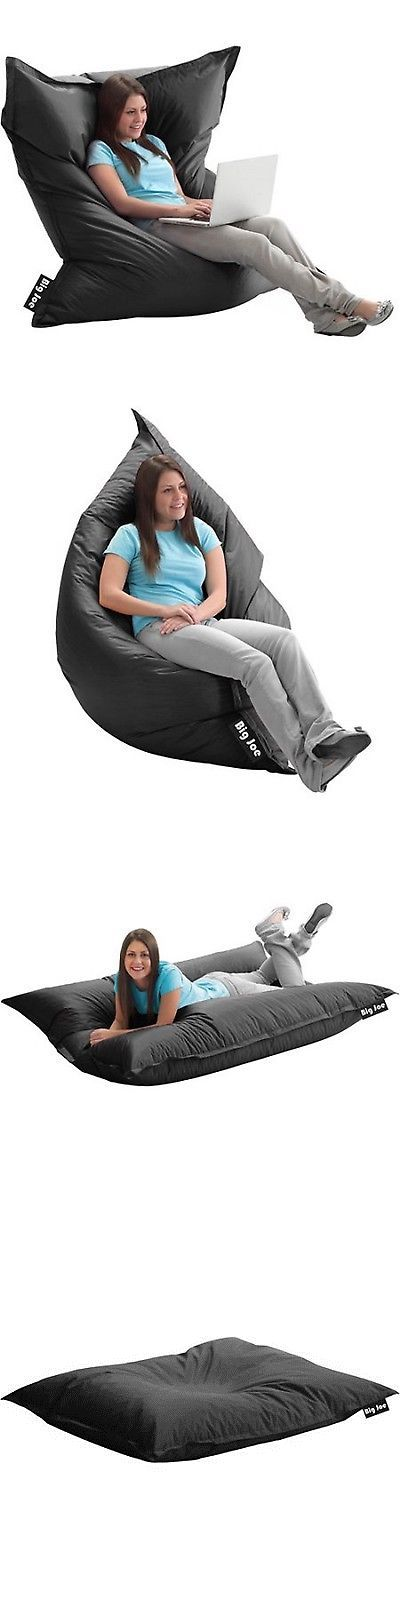 Bean Bags and Inflatables 108428: Big Joe Bean Bag Original Stretch Large Cozy Chair Gaming Lounger Limo Black New -> BUY IT NOW ONLY: $52.71 on eBay!